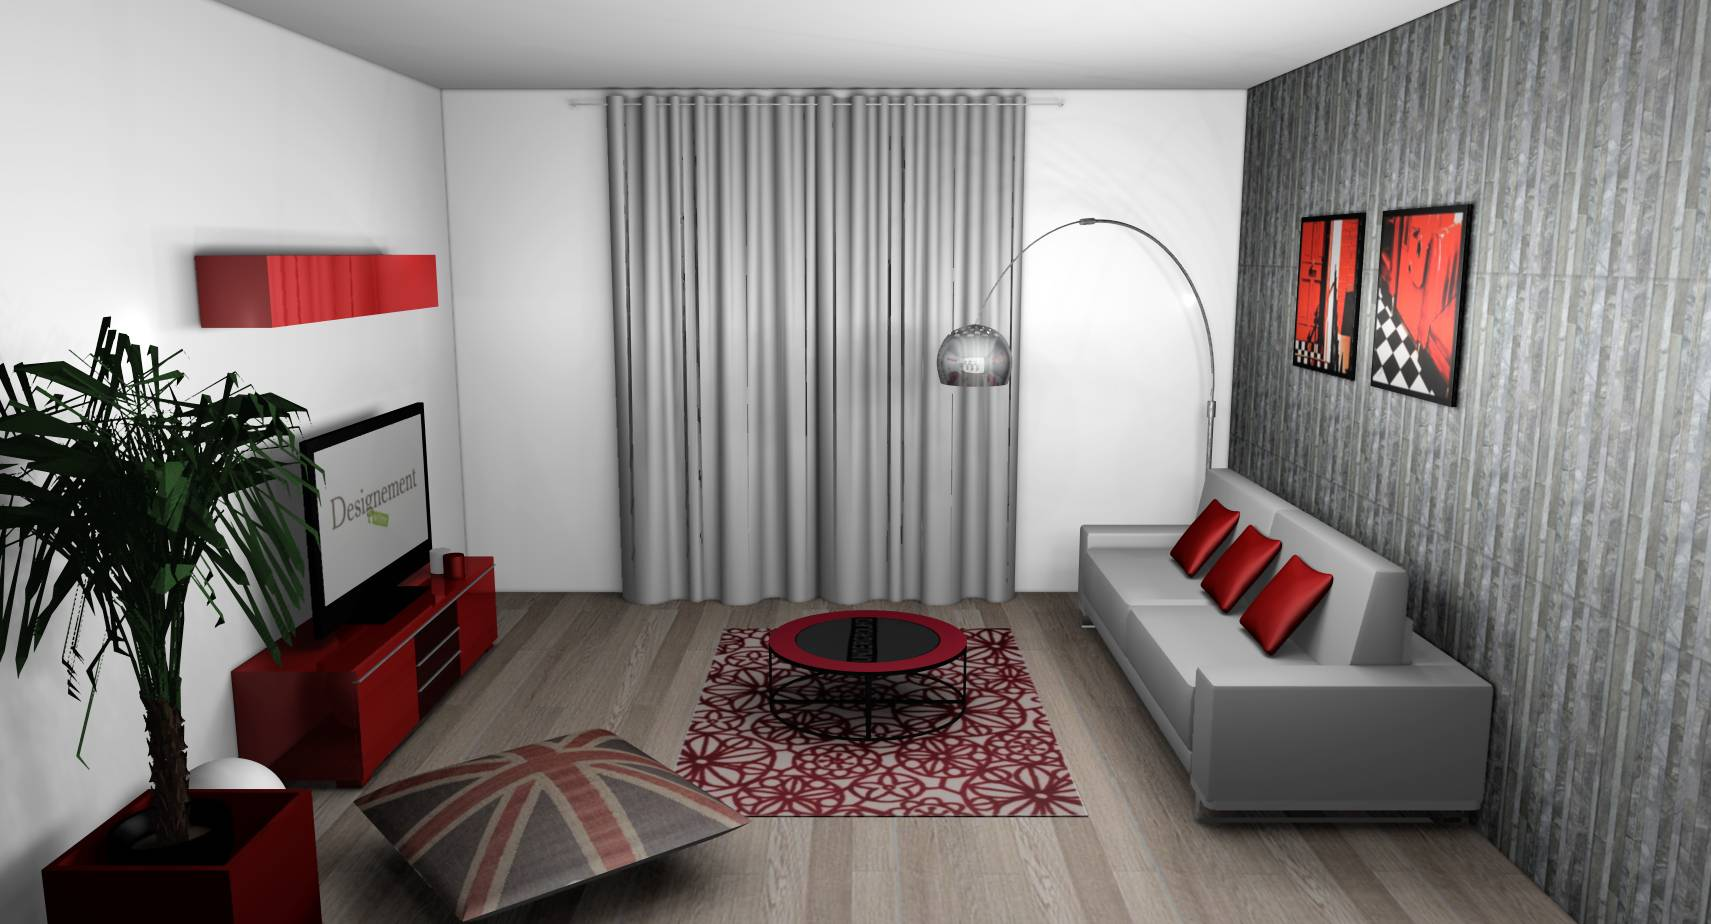 tapisserie moderne pour salon. Black Bedroom Furniture Sets. Home Design Ideas